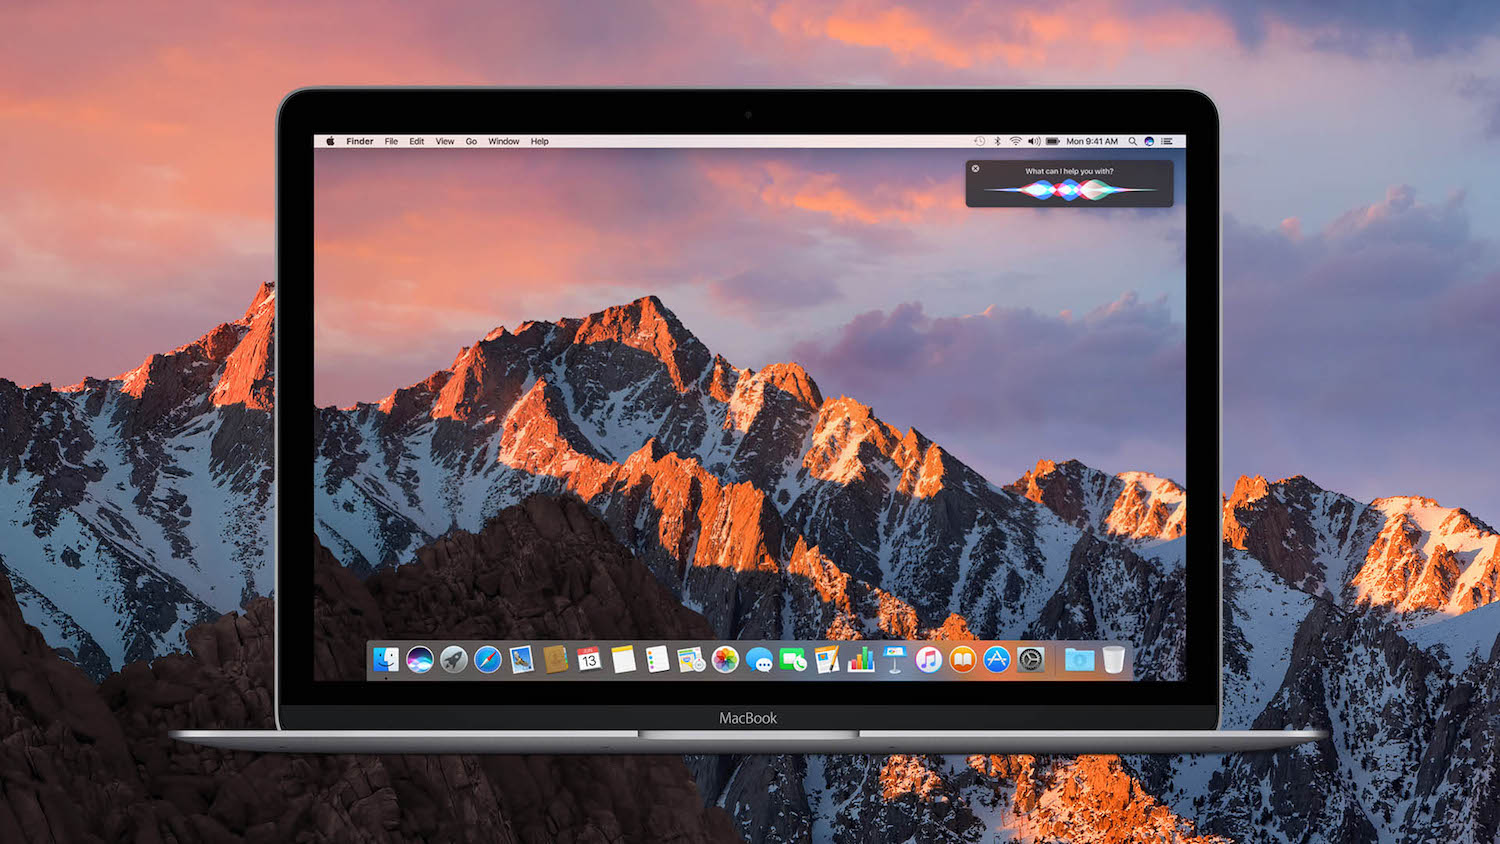 macOS Sierra is available for download